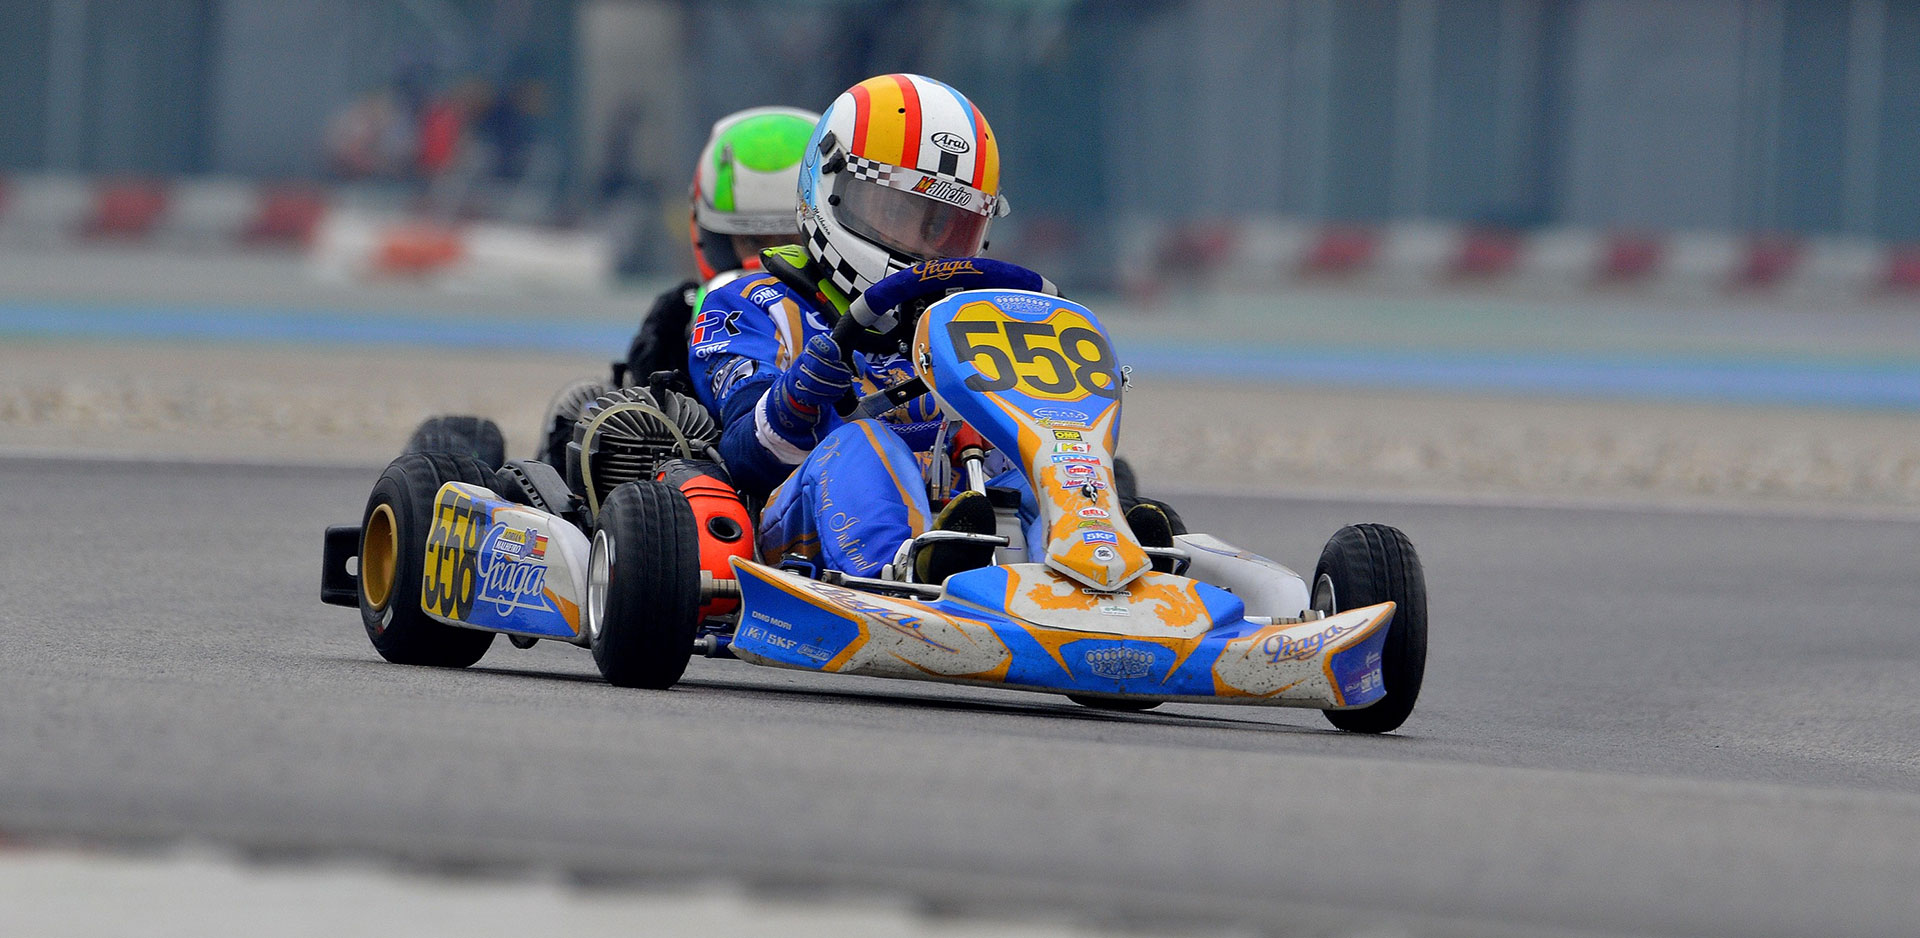 14 IPKarting chassis at the start of the WSK Super Master Series